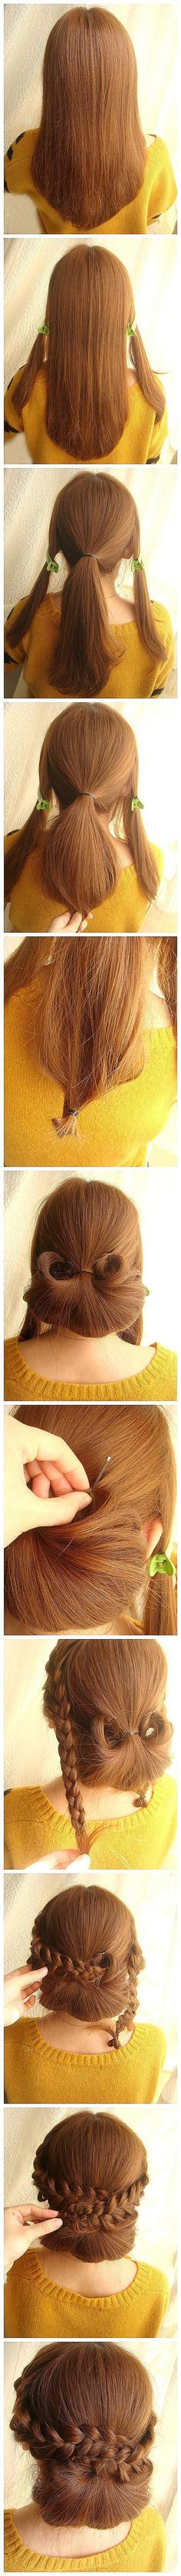 Hair idea for Ecky's wedding